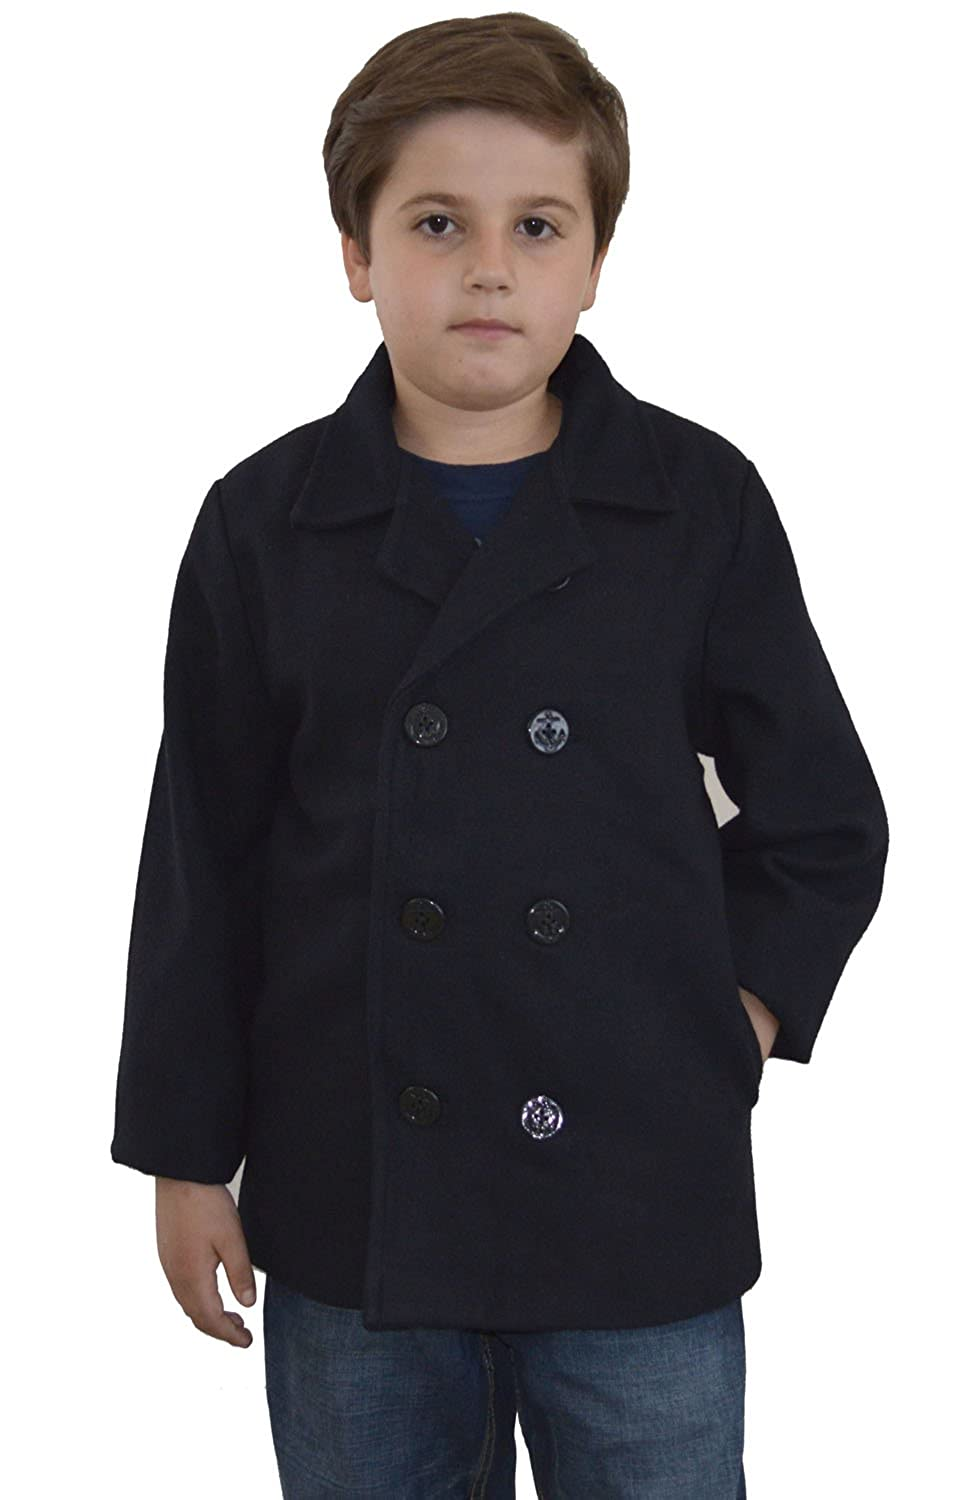 Amazon.com: Johnnie Lene Kids Navy Blue Wool Peacoat Jacket